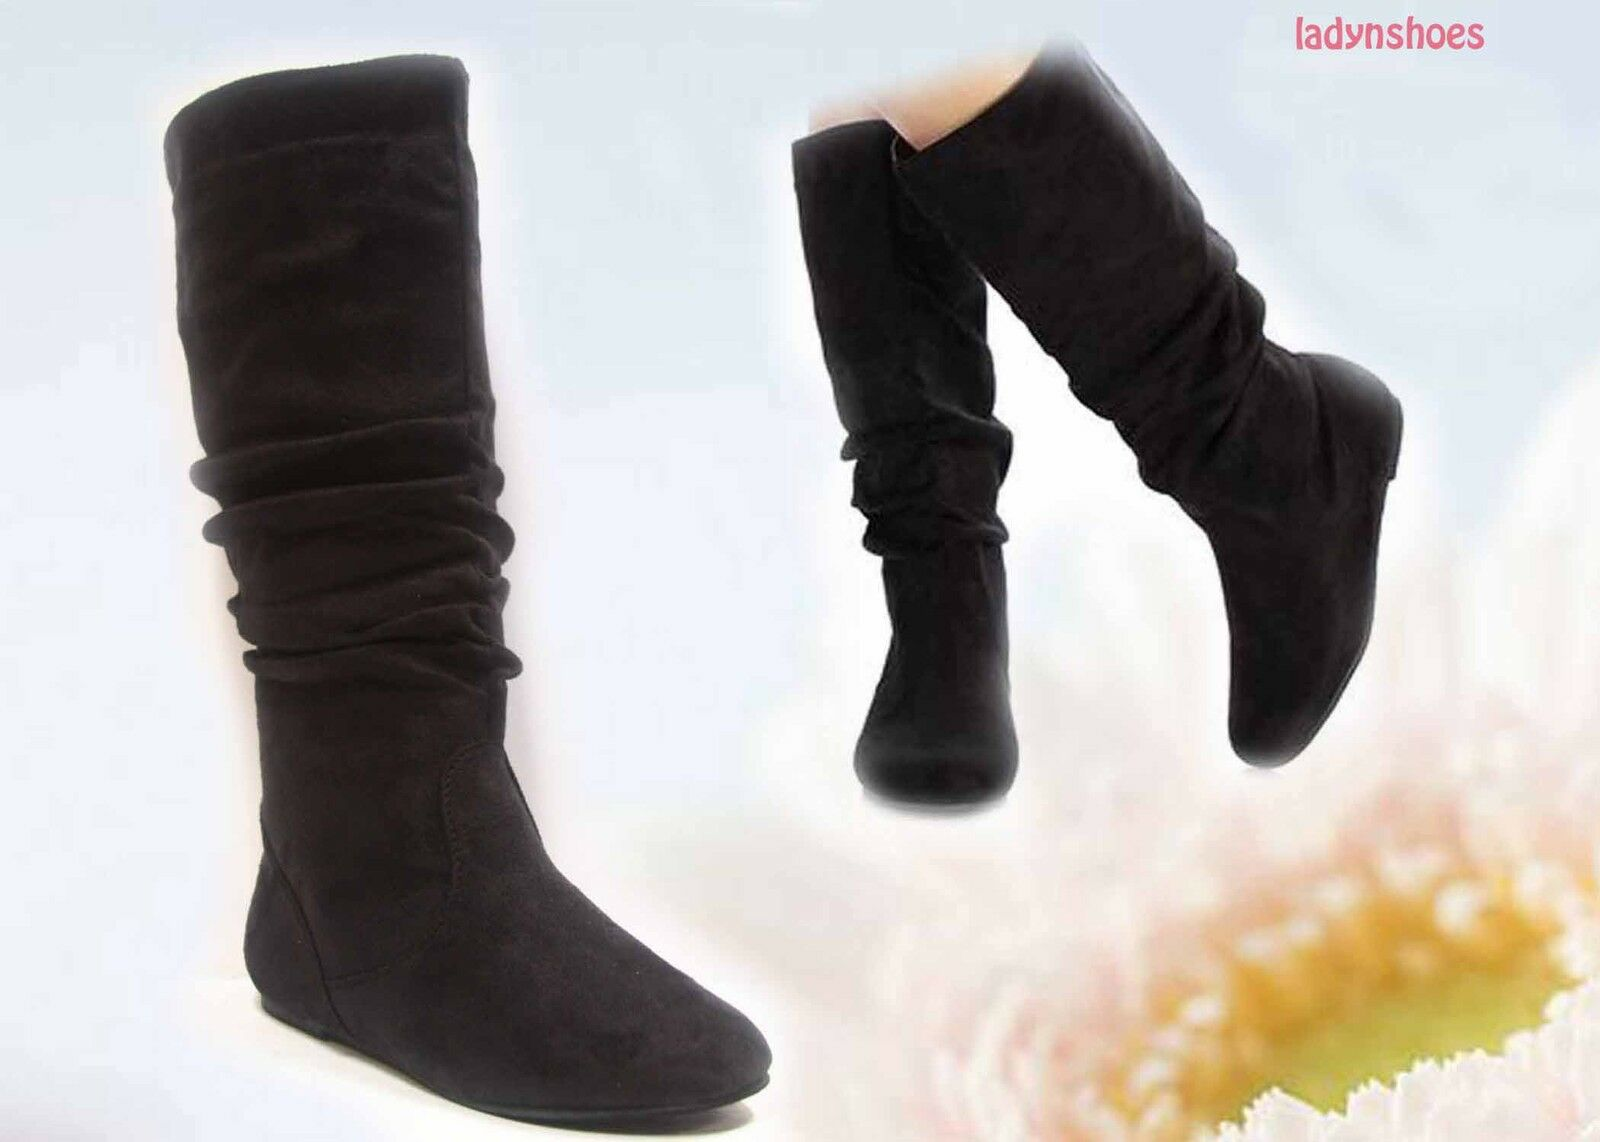 NEW Black Slip On Flat Slouch Mid Calf Knee High Boot Women's Shoes Size 5 -10